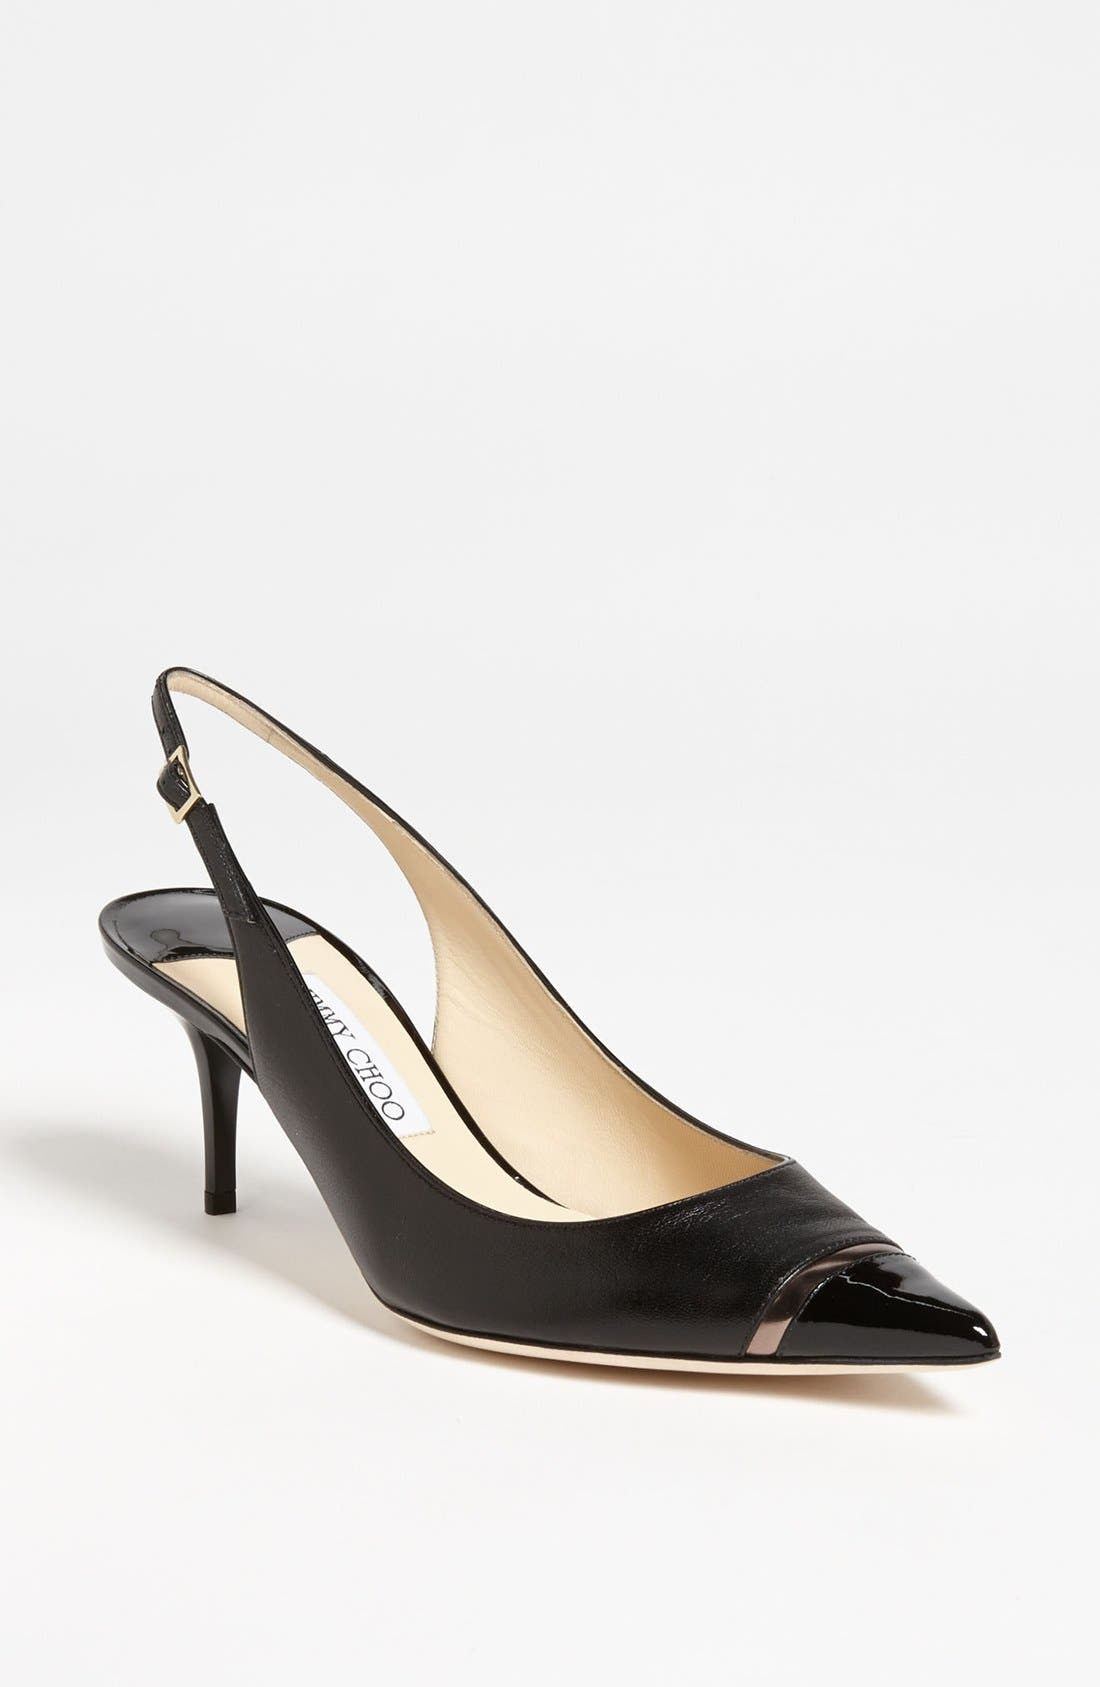 Alternate Image 1 Selected - Jimmy Choo 'Laurel' Cap Toe Slingback Pump